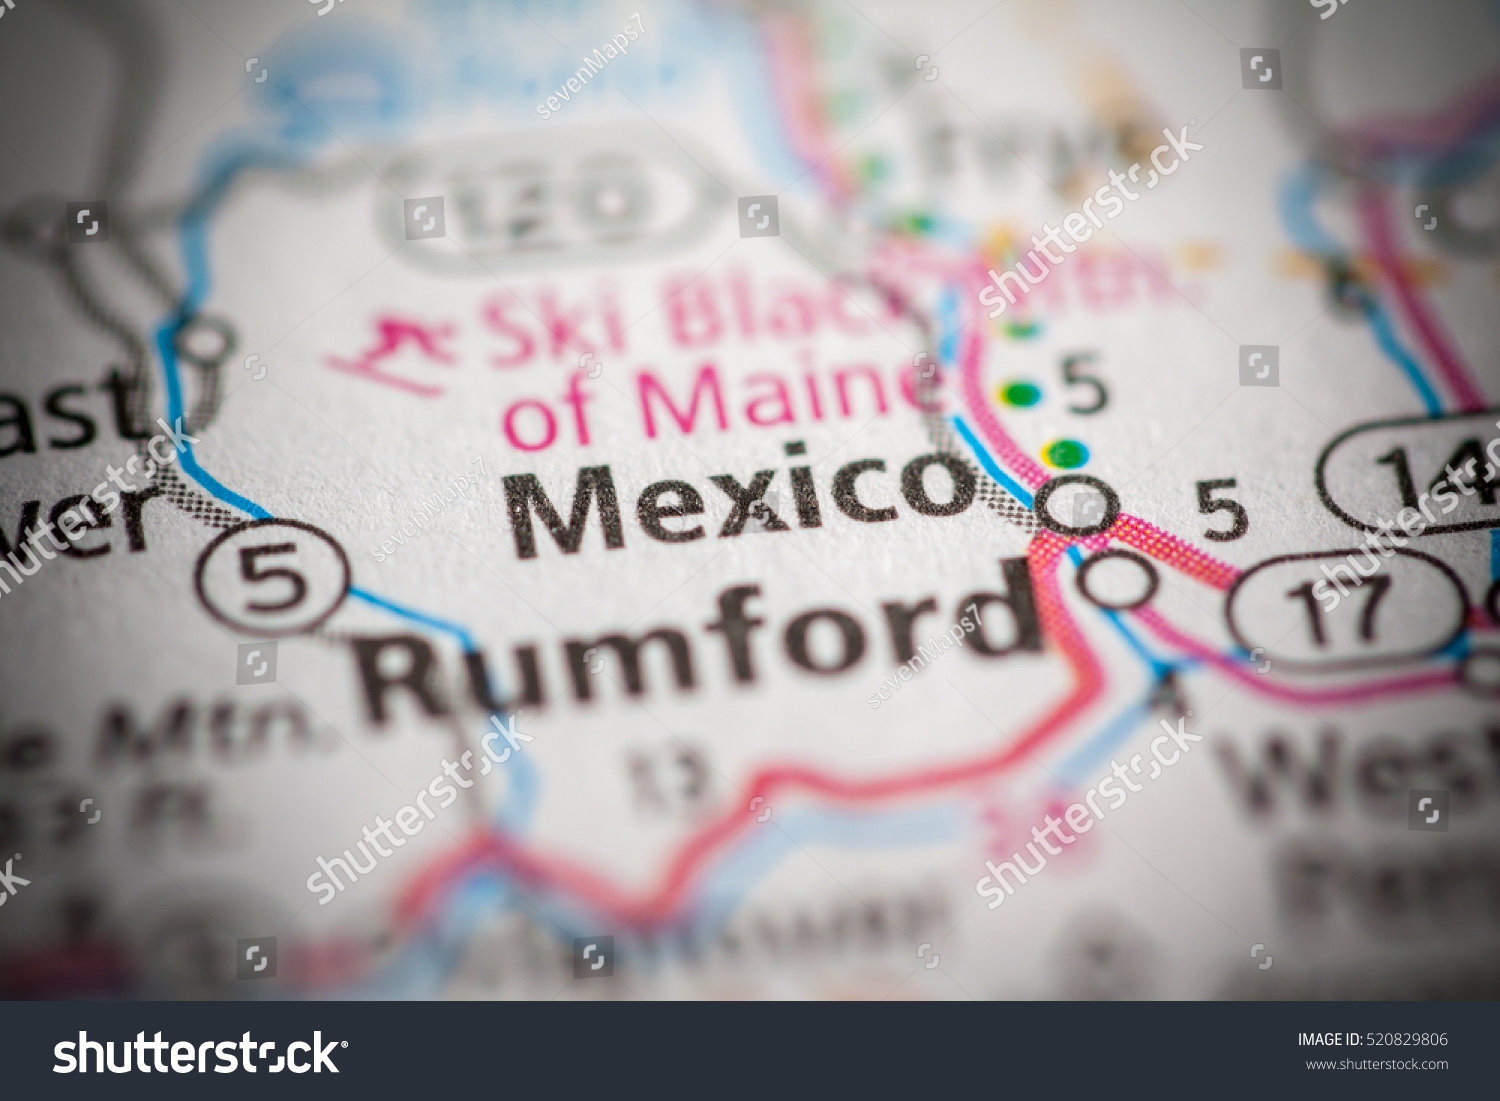 Mexico Maine Map.Mexico Maine Usa Stock Photo Edit Now 520829806 Shutterstock